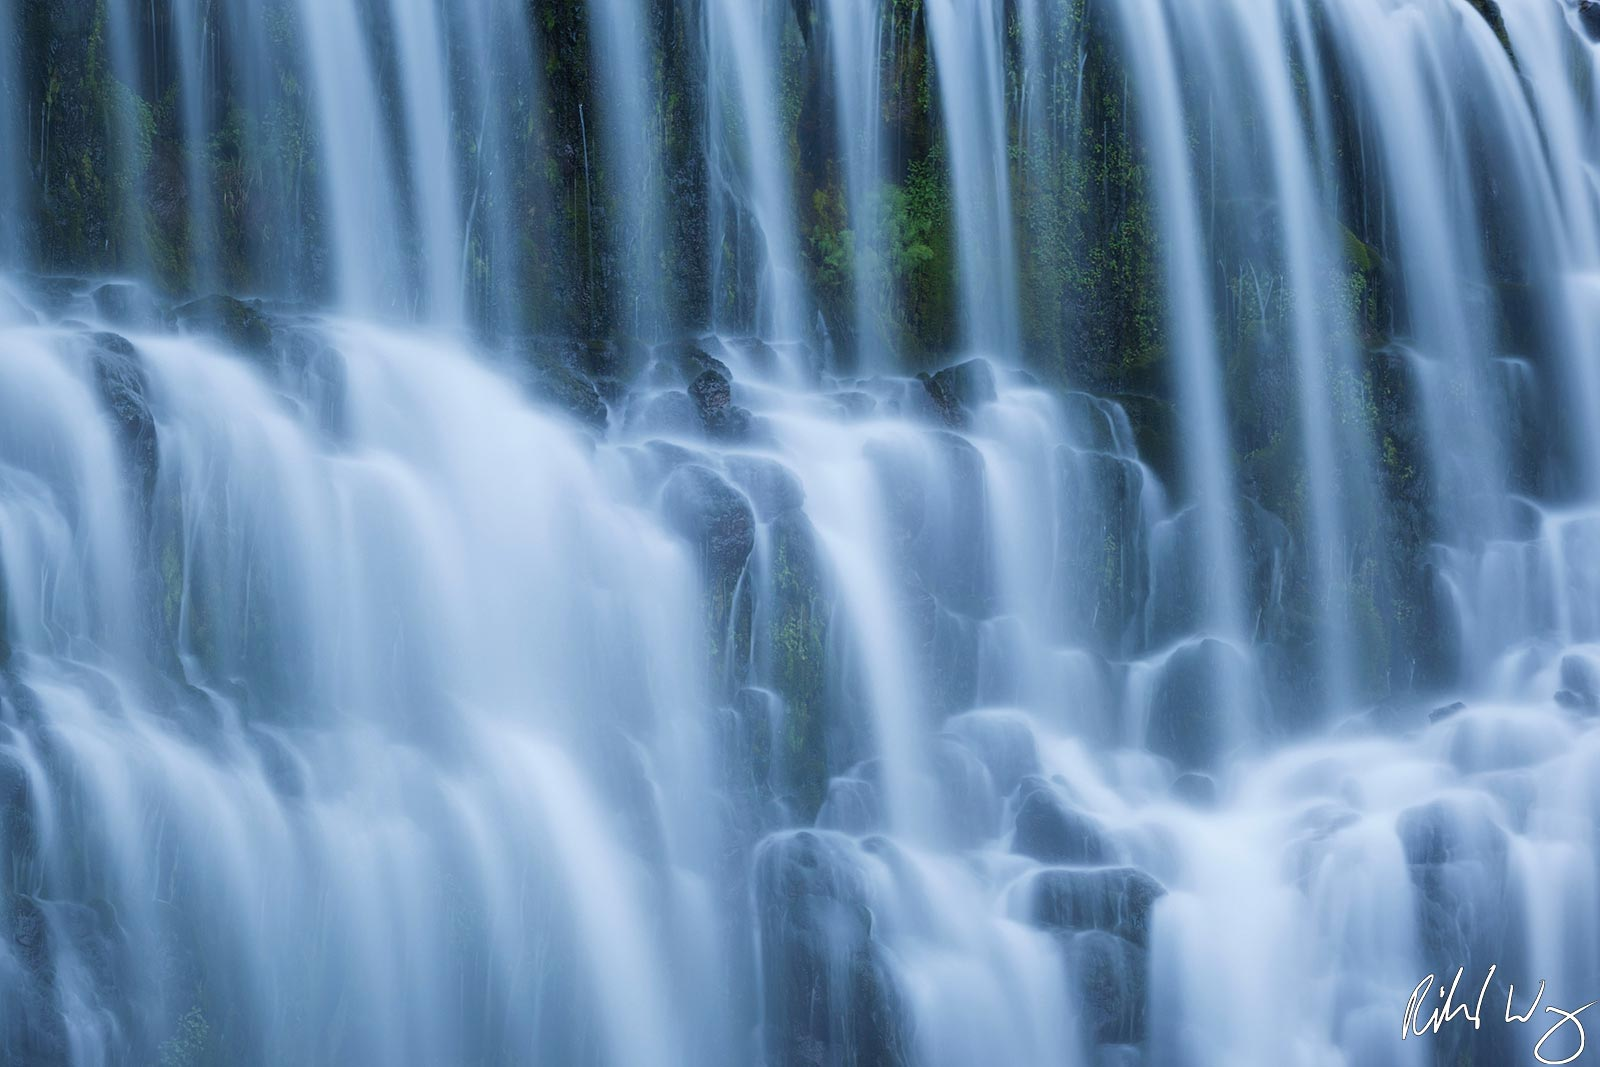 peter lik tranquility style photo, middle mccloud river falls, shasta-trinity national forest, california, photo, photo